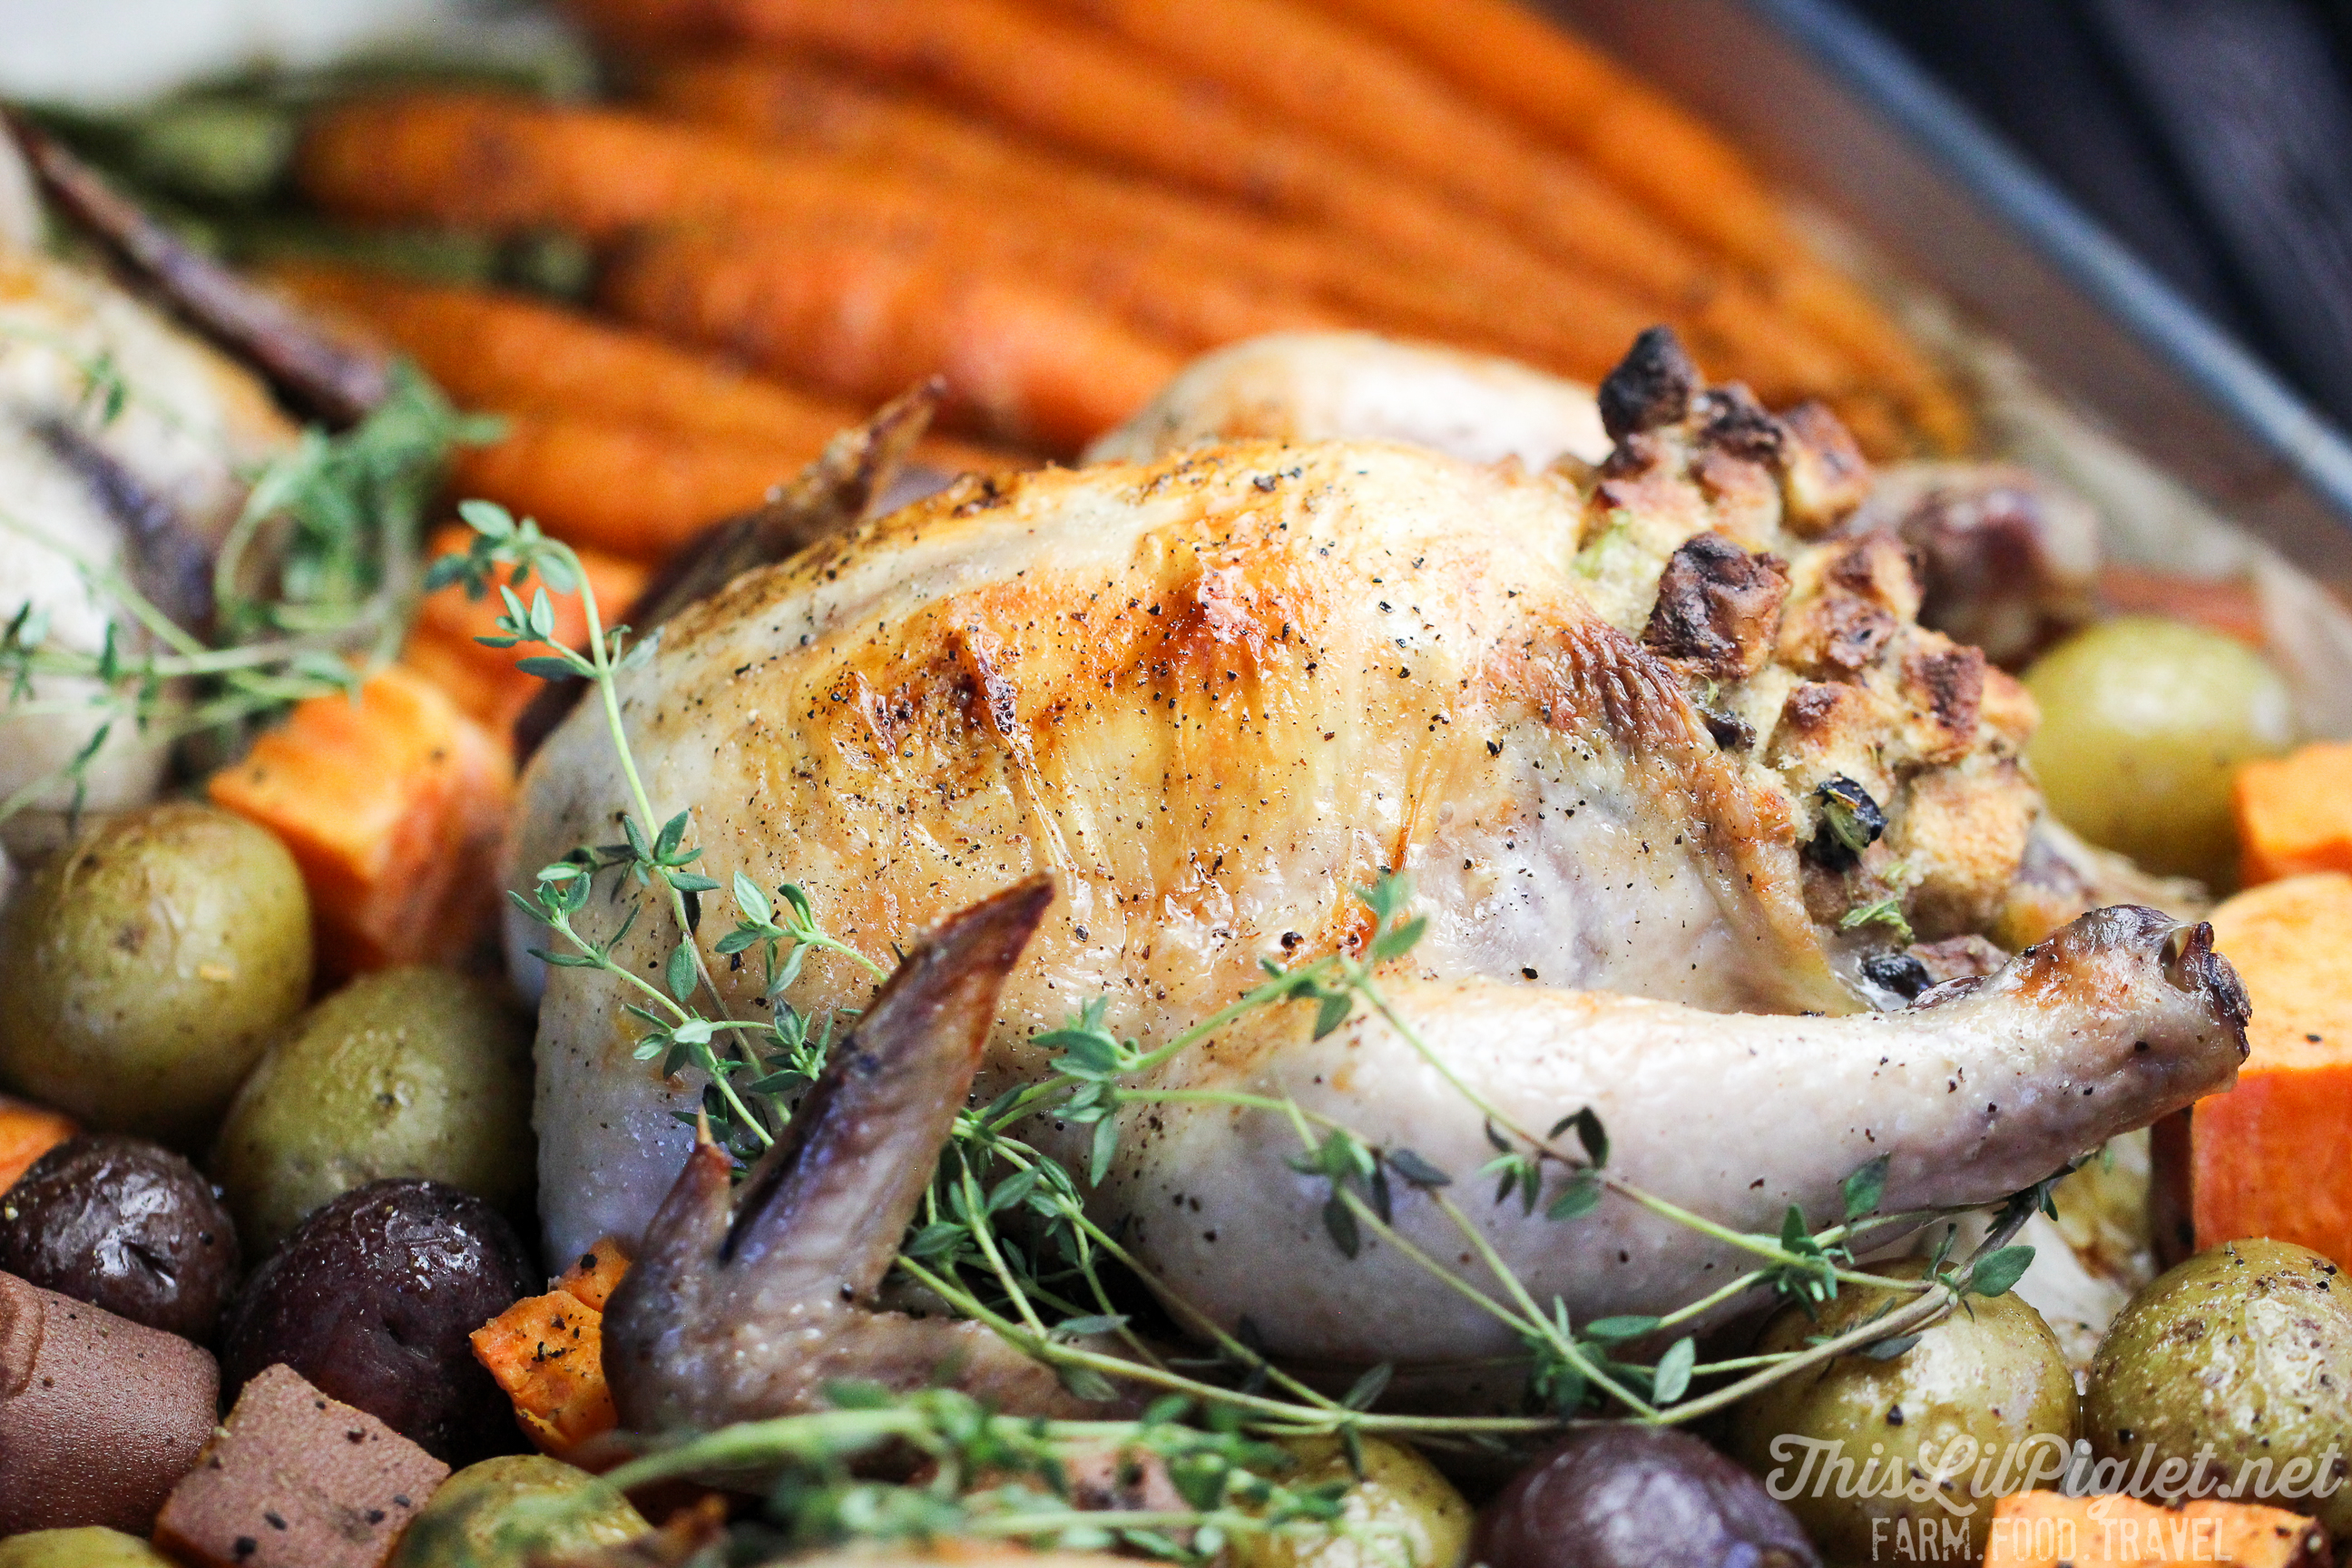 Family Style One Pan Meals: Stuffed Cornish Hens and Roasted Vegetables // @thislilpiglet